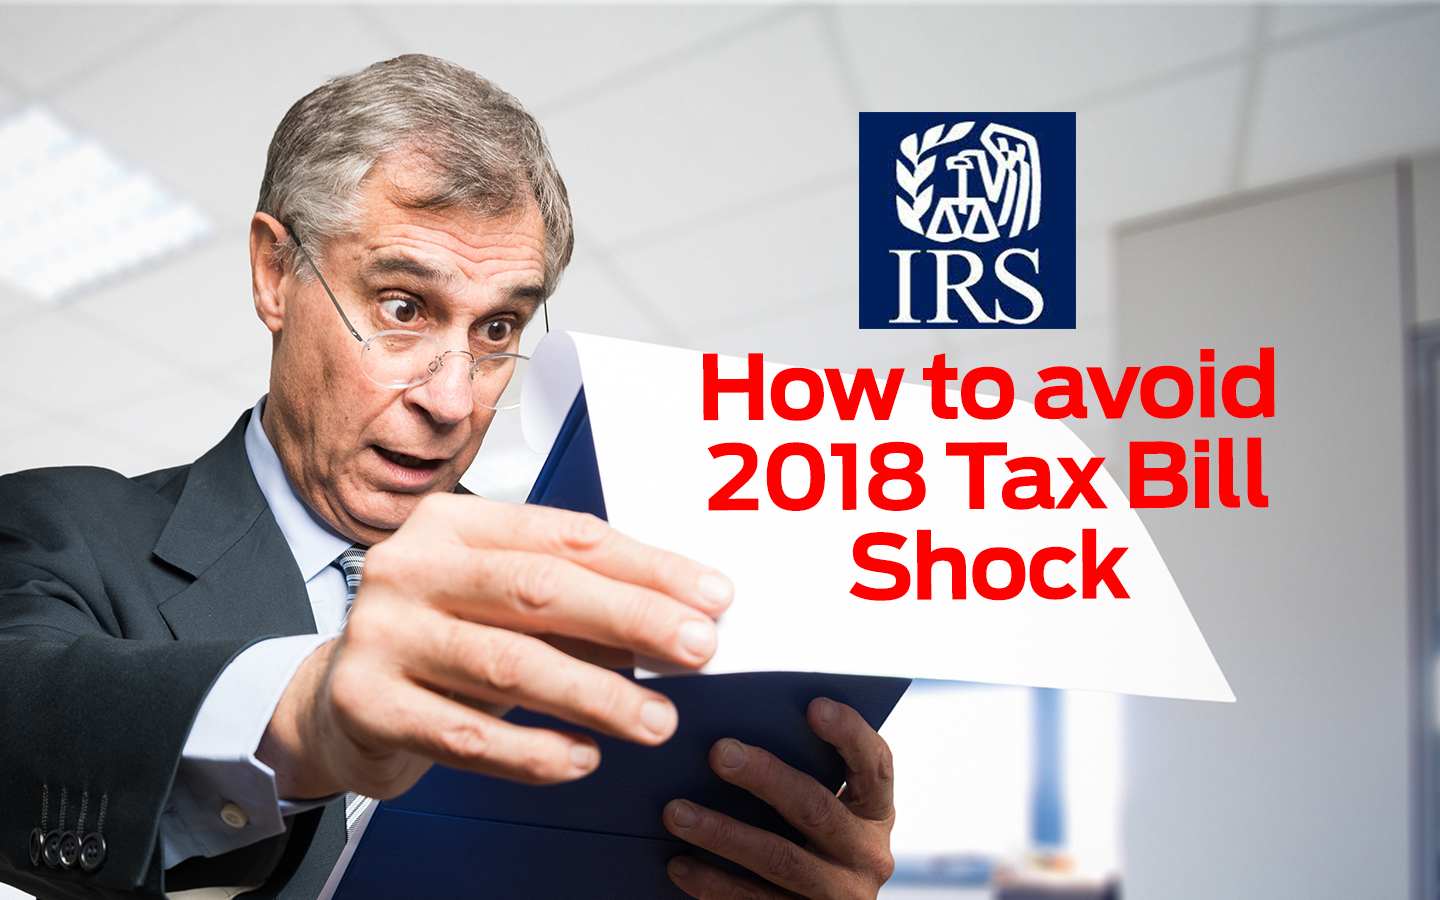 Avoid IRS Tax Bill Shock